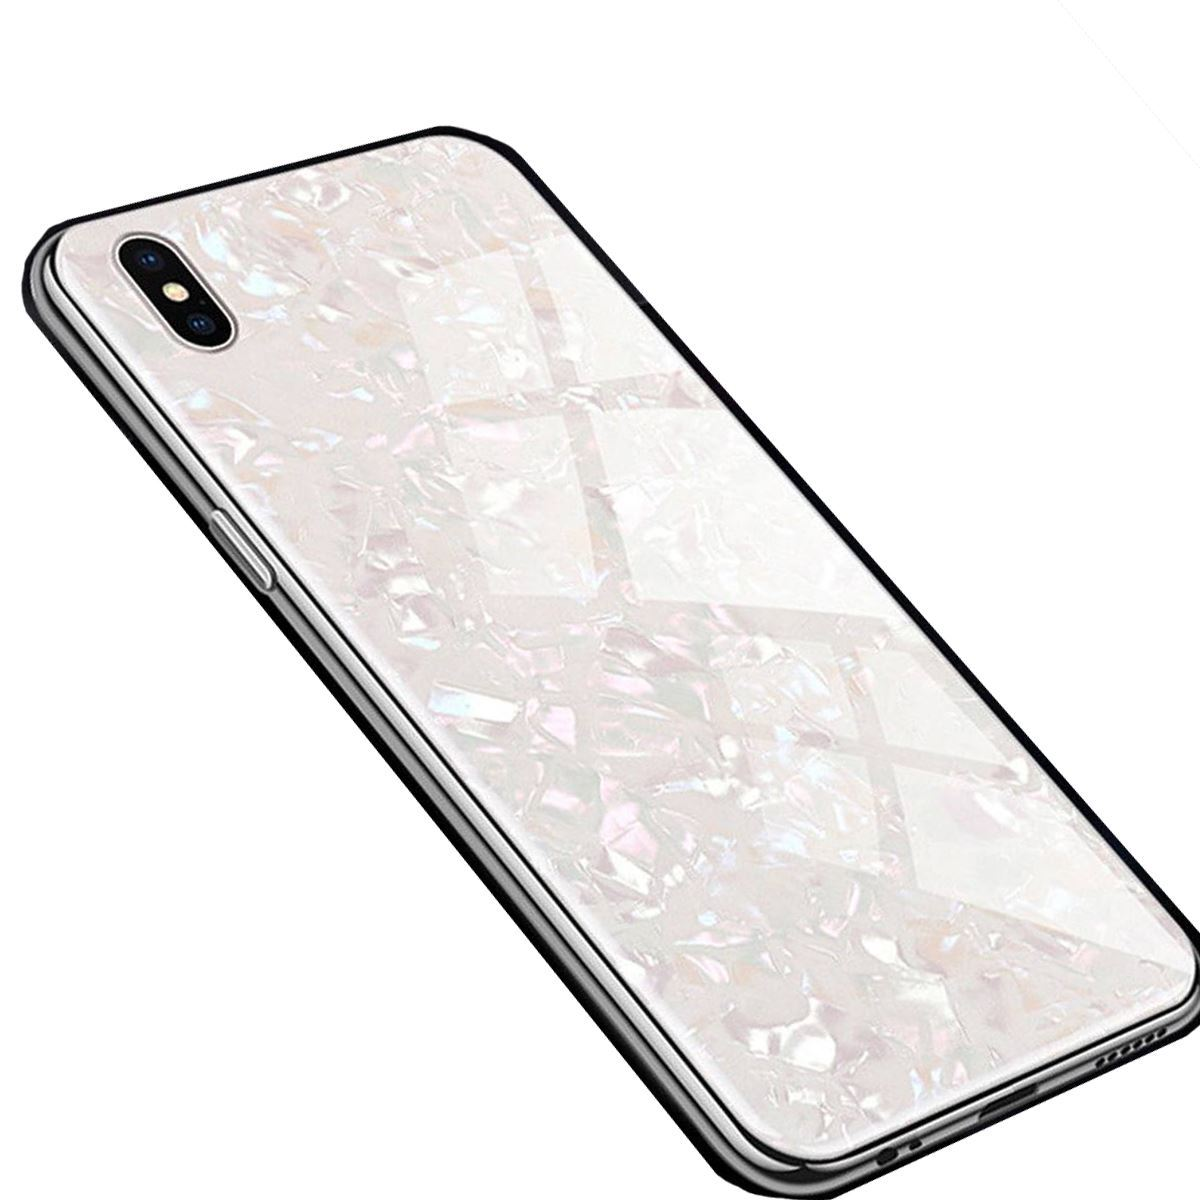 iPhone 11 Case Marble Back Bumper Cover - White